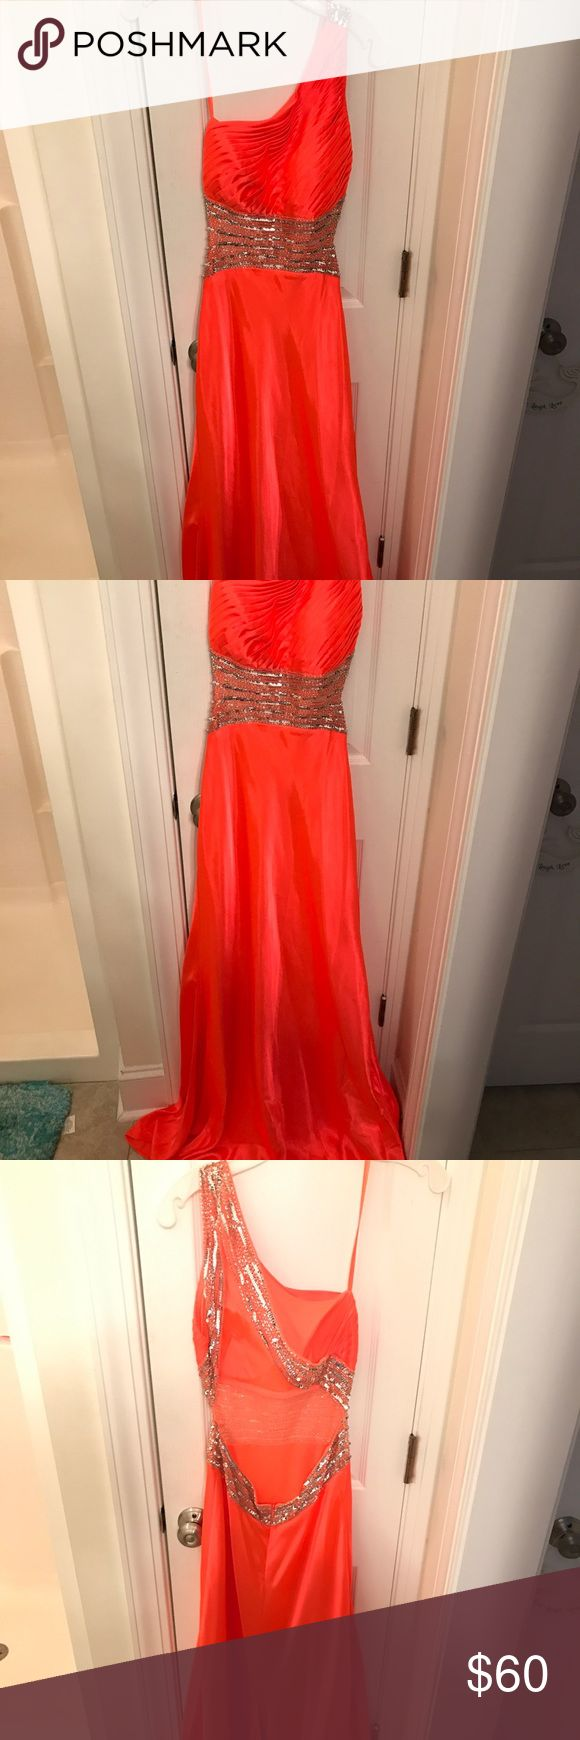 Beautiful long formal dress pink/orange size 6 Beautiful long formal dress size 6 hot pink/orange color silver sparkles around waist and across back strap, open back with strap, one shoulder strap dress flowy and comfortable no stains worn once Betsy & Adam Dresses One Shoulder